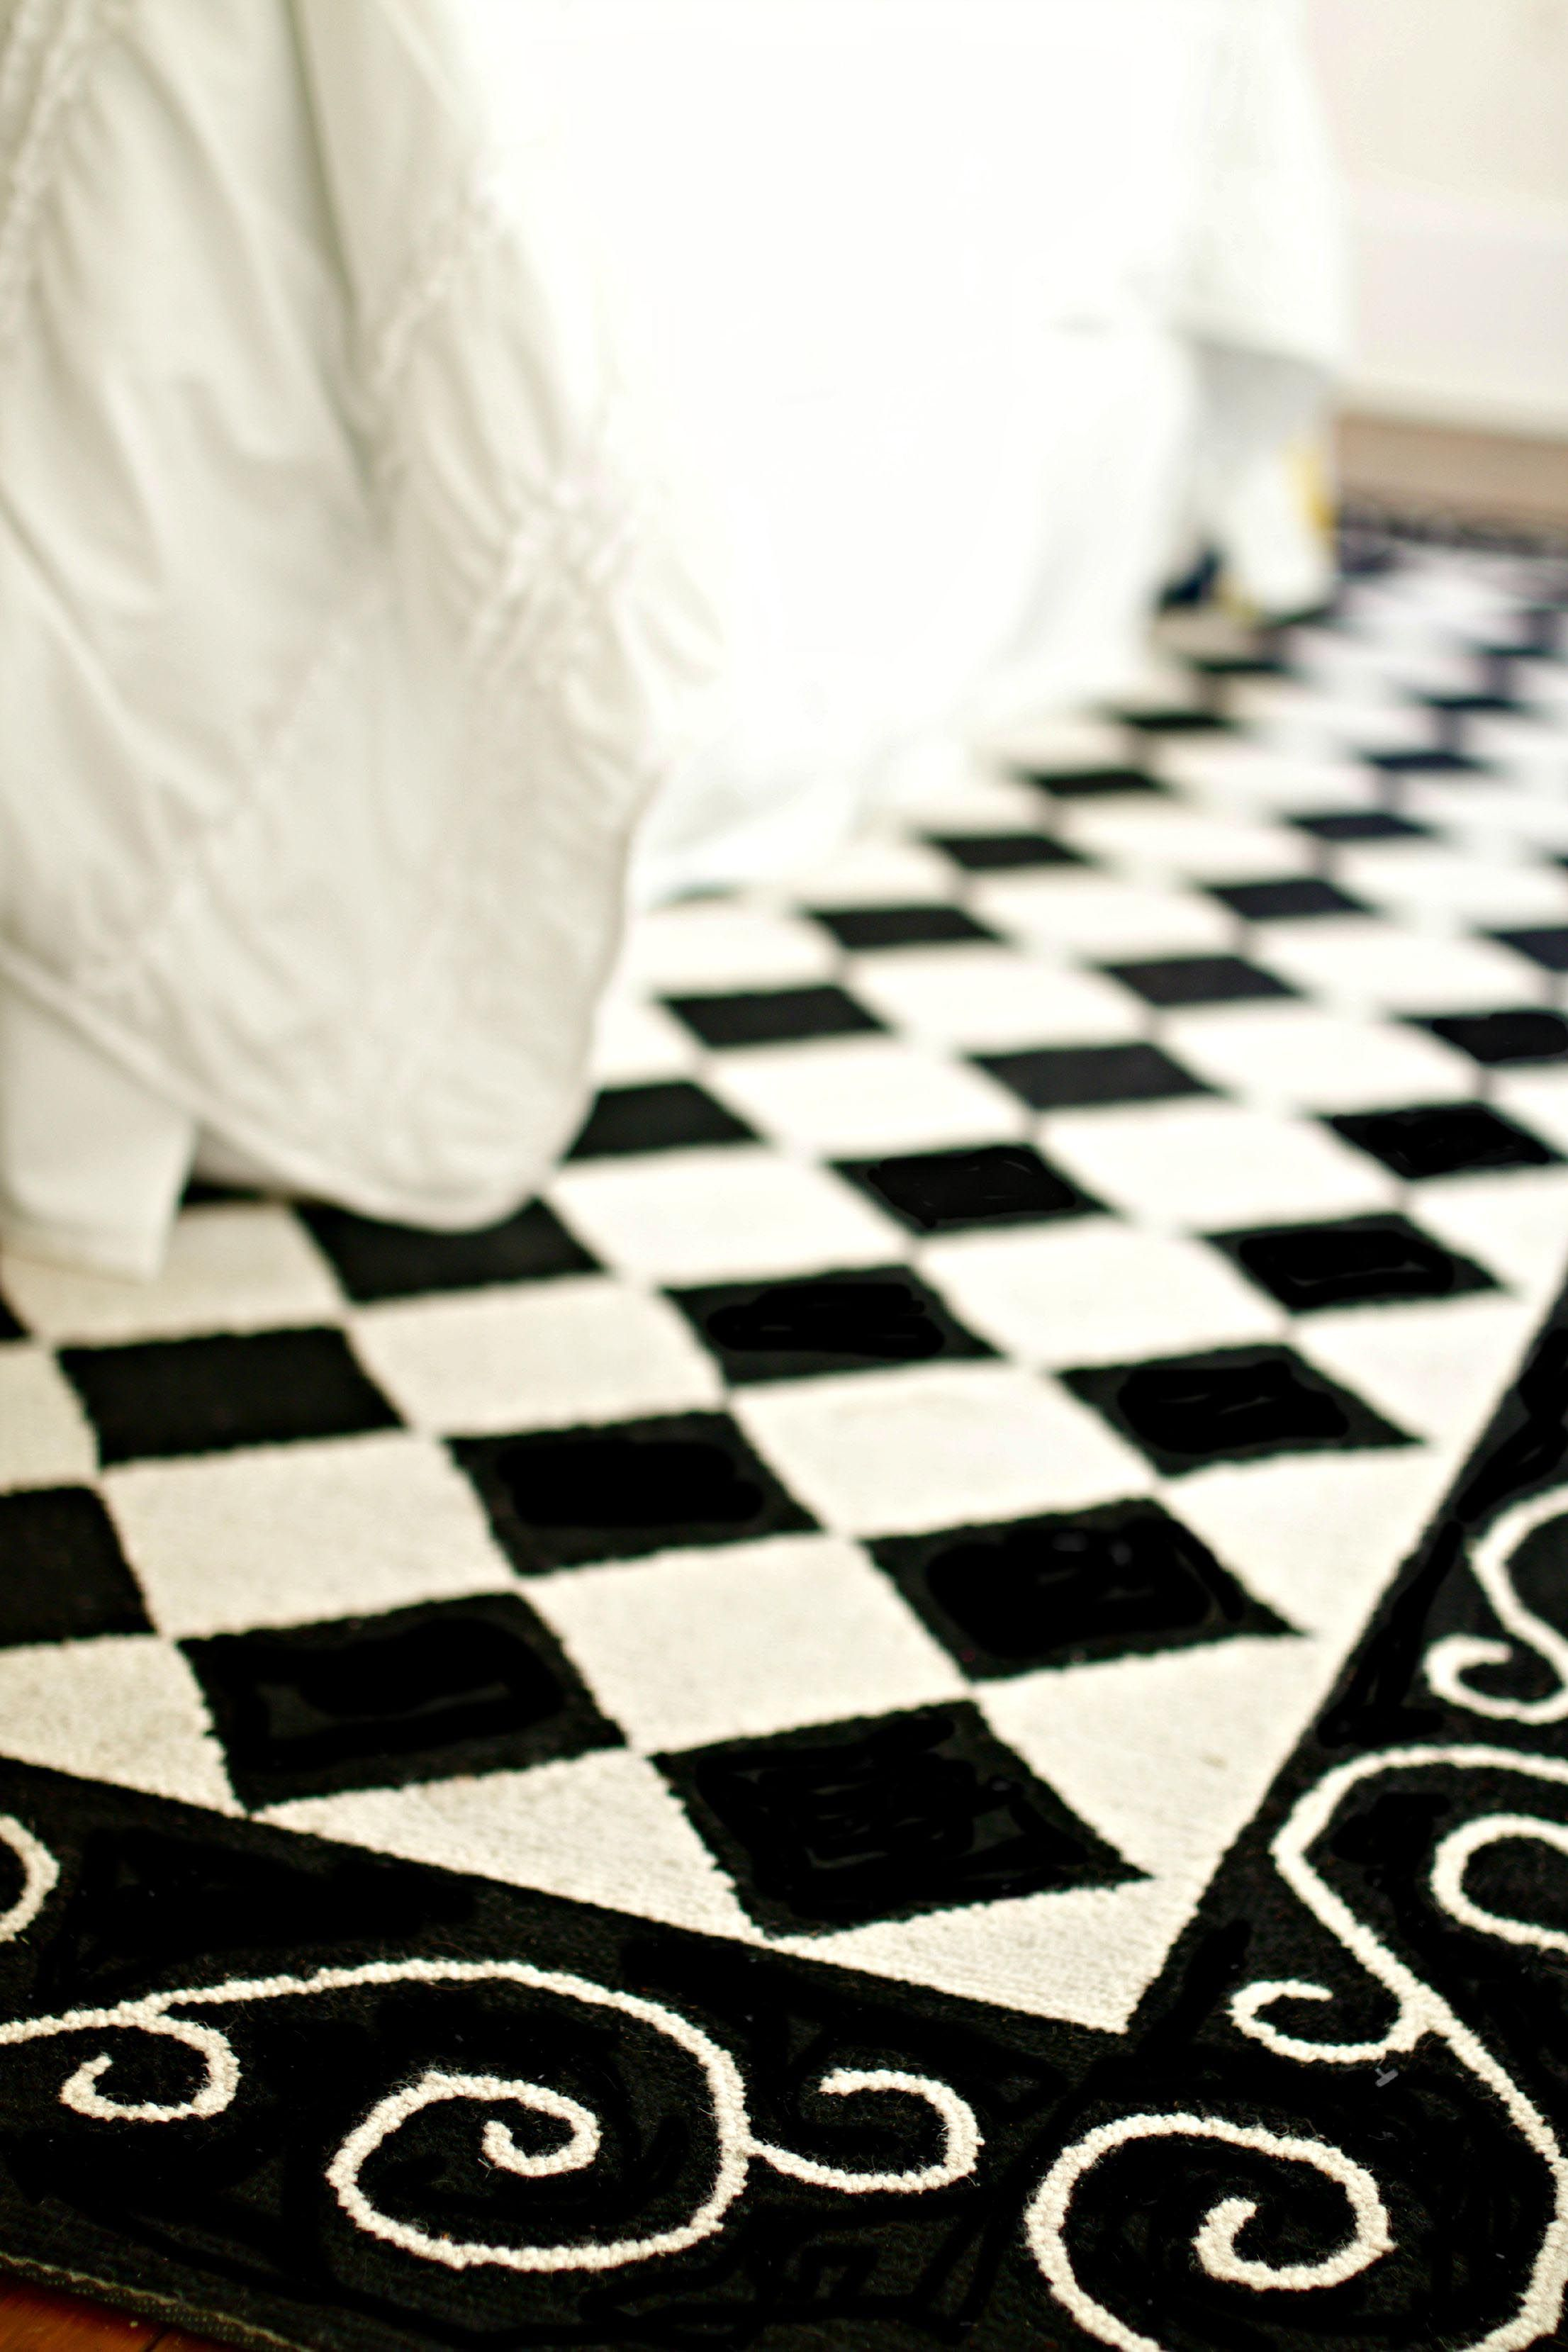 Checkered Carpet Black And White Black And White Carpet White Carpet Bedroom White Carpet